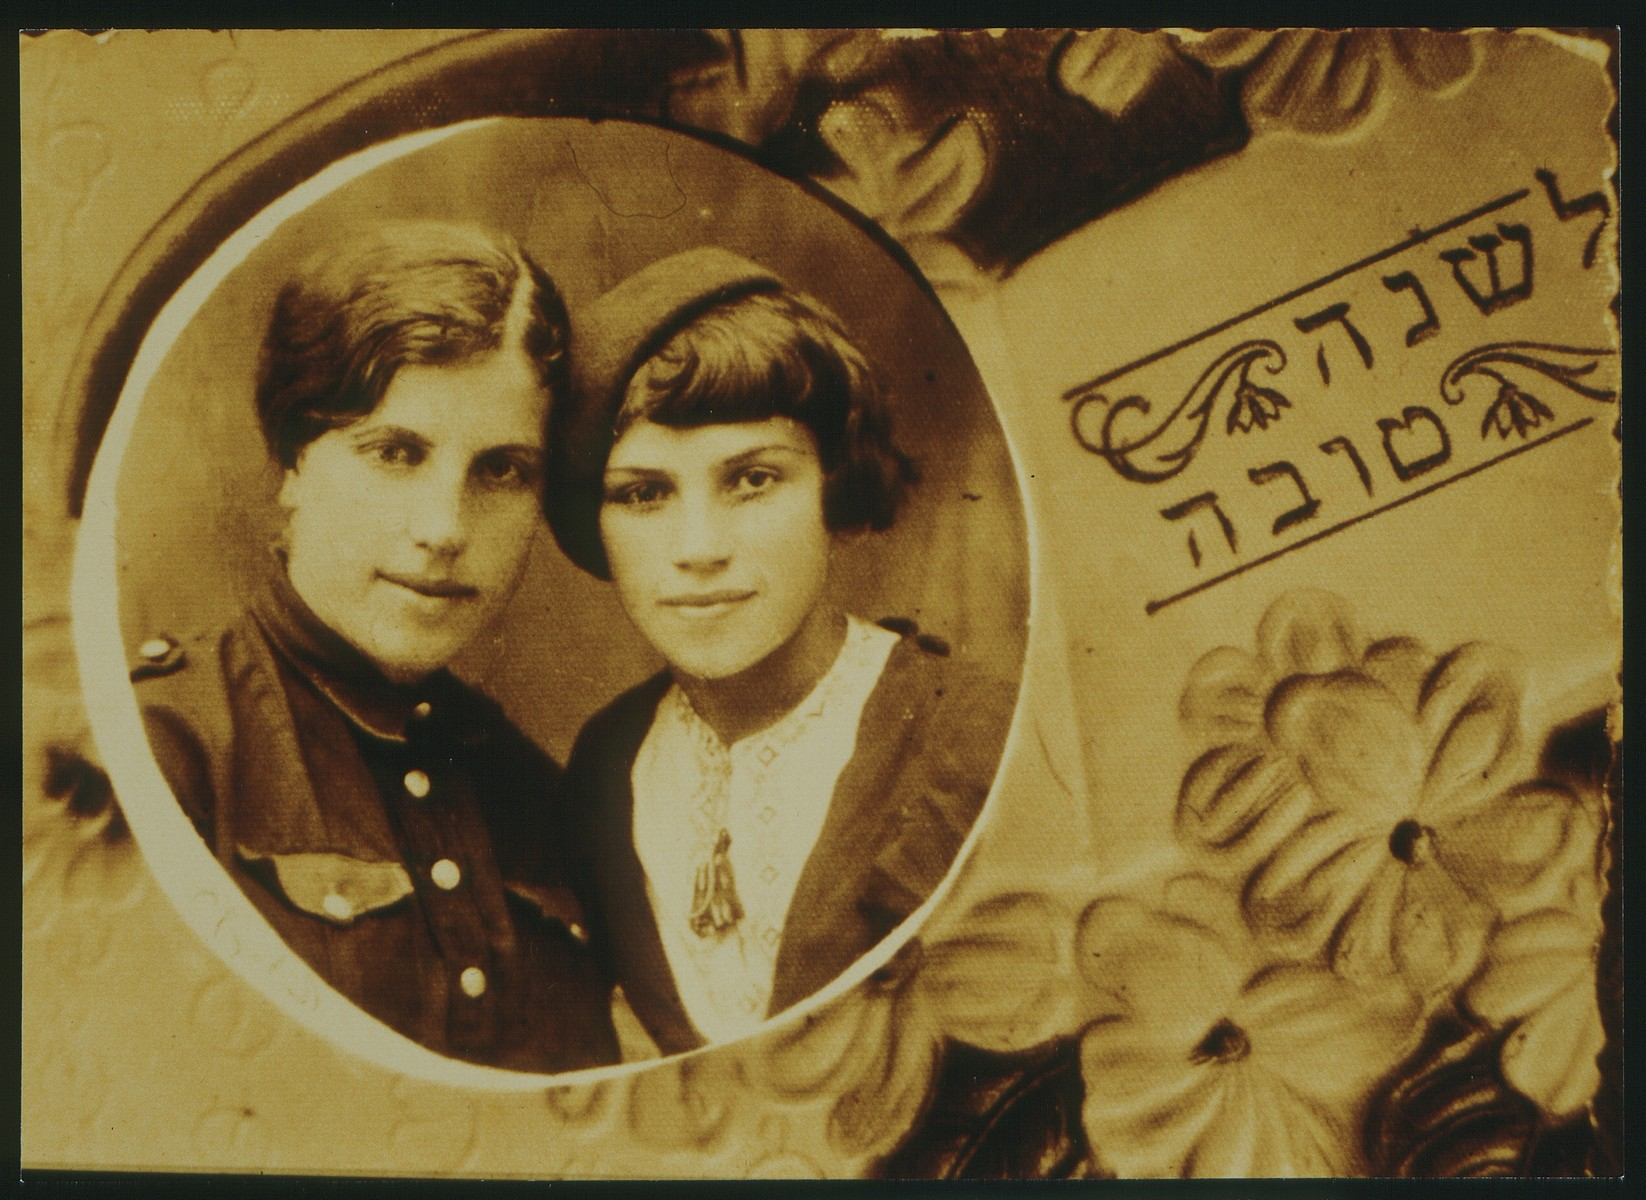 A Jewish New Year's card from the Hinski sisters of Eisiskes.  Pictured are Golda Brahah (left) and sister Hayya Sheine Hinski. Hayya-Sheine died a natural death during the summer of 1940. Her sister was murdered by the Germans during the September 1941 killing action in Eisiskes.